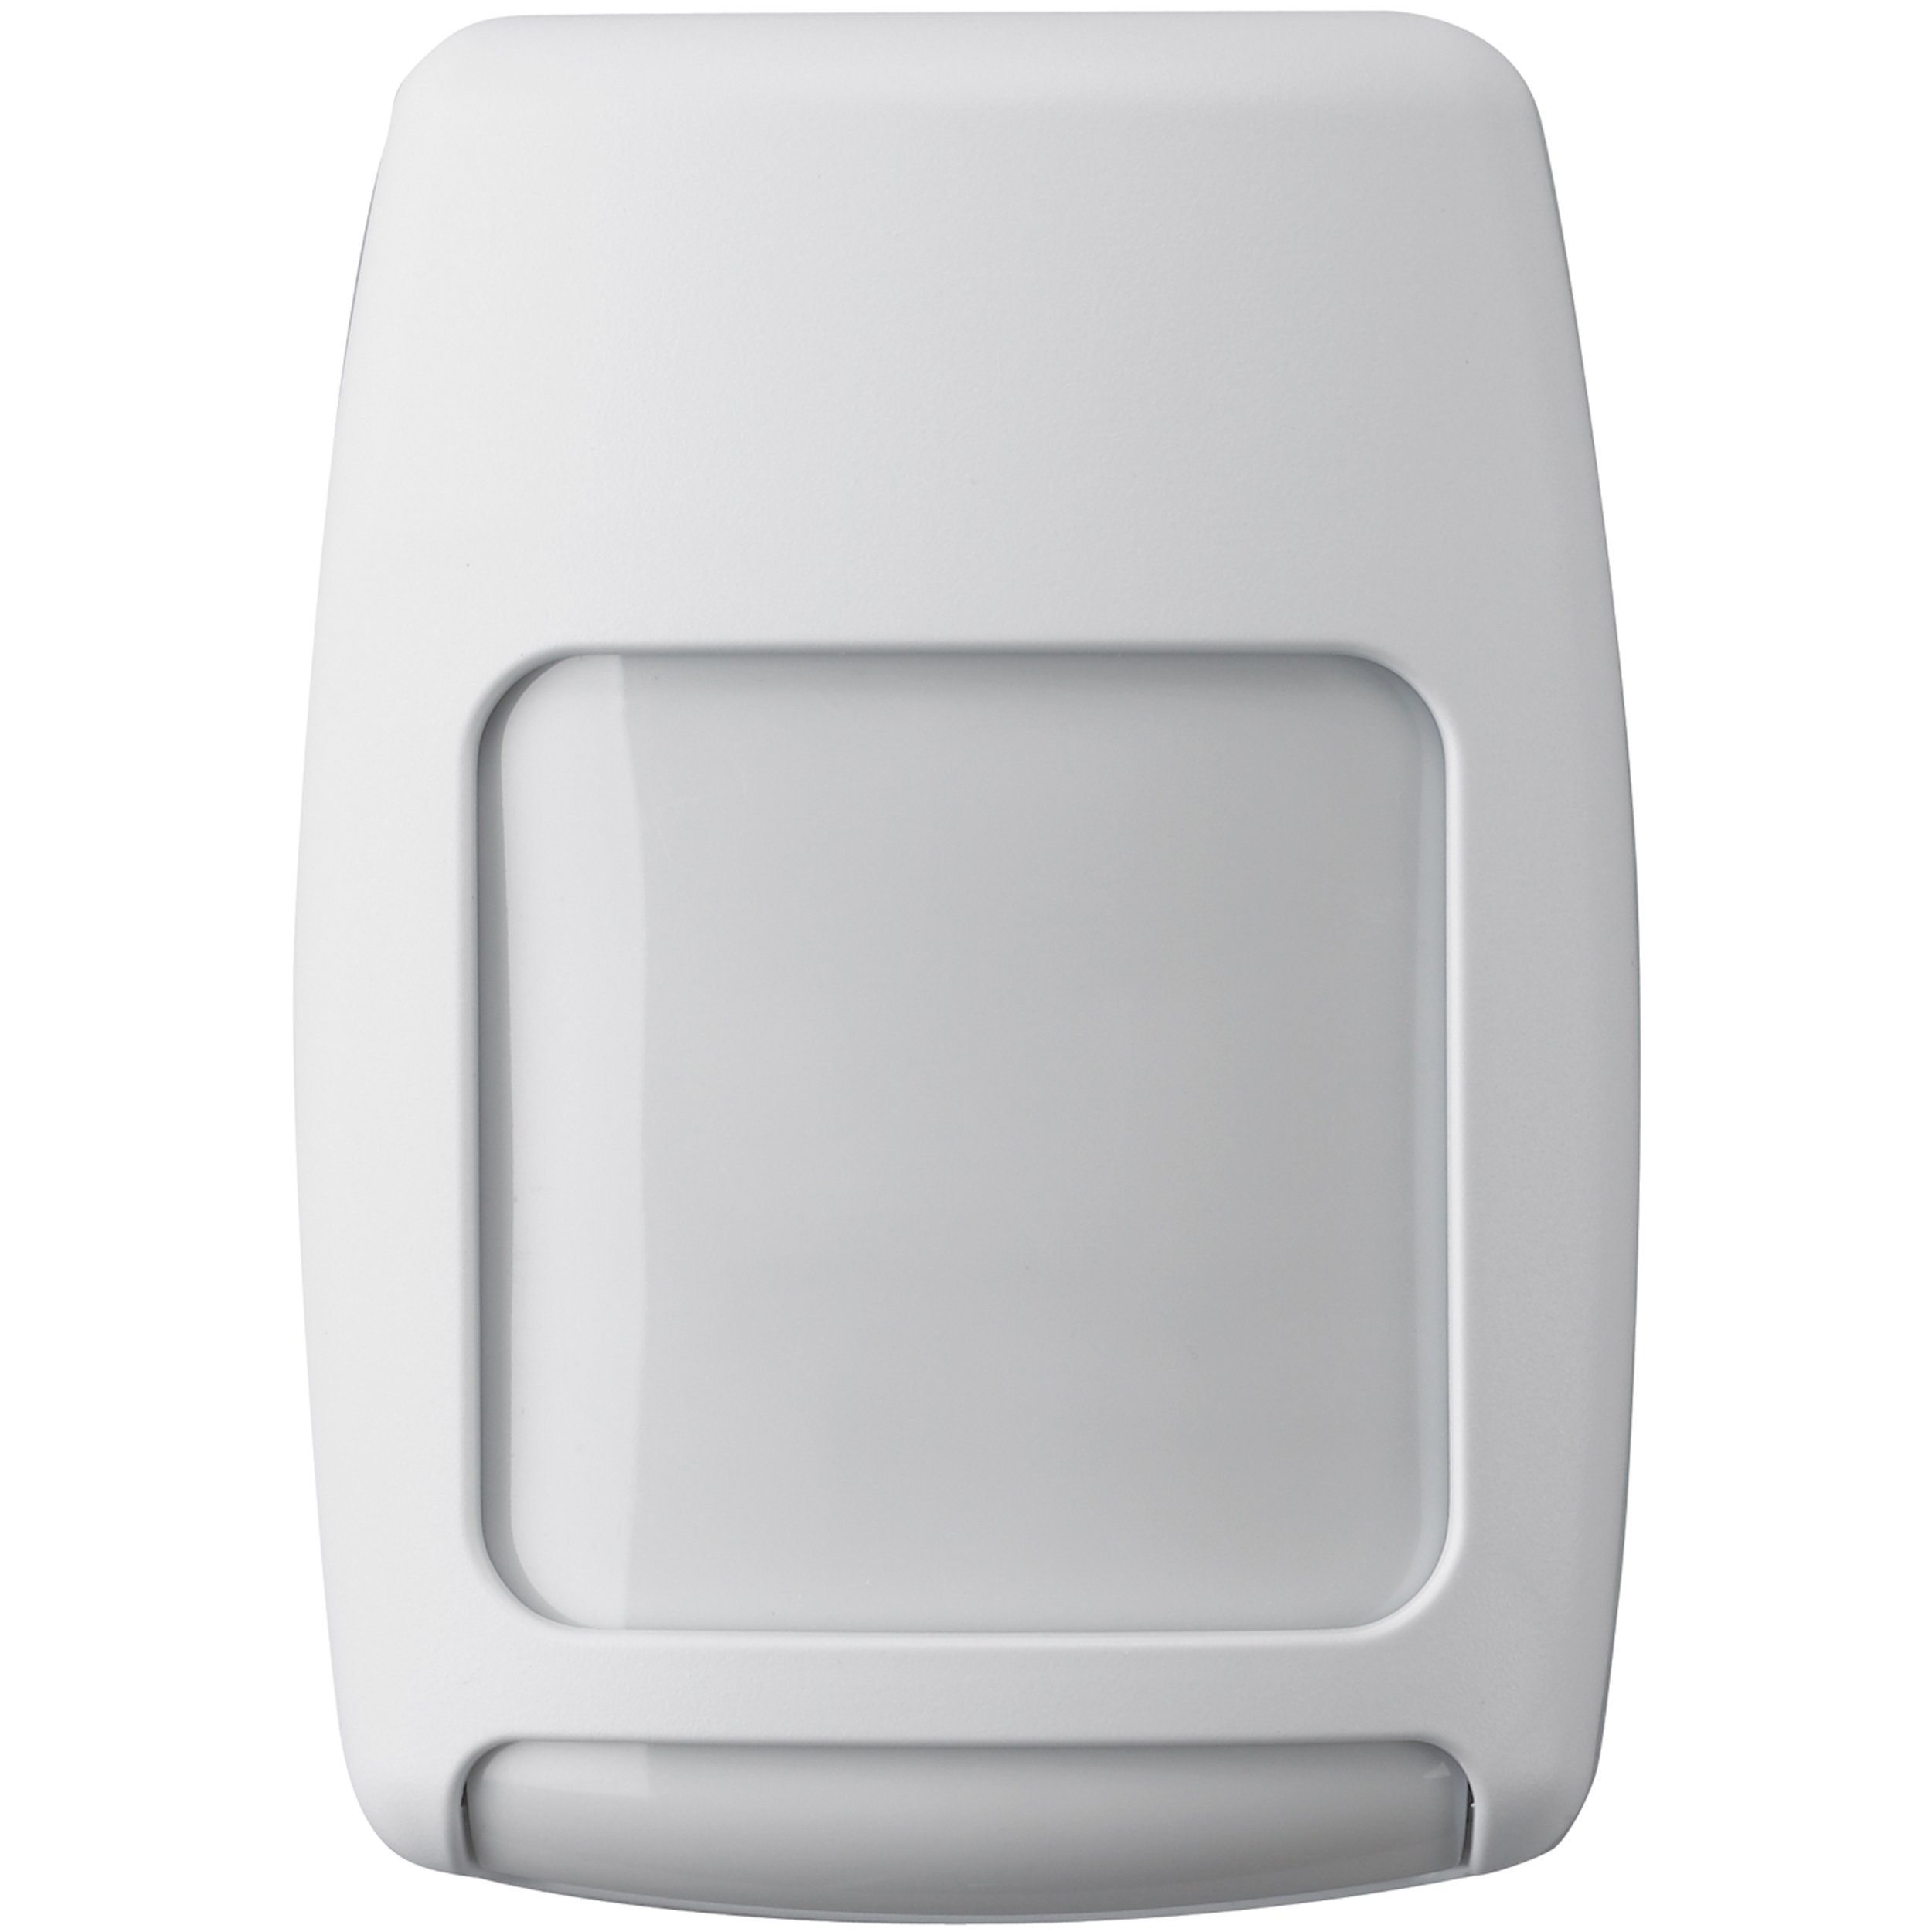 Honeywell 5800PIR Wireless Motion Detector   by Honeywell